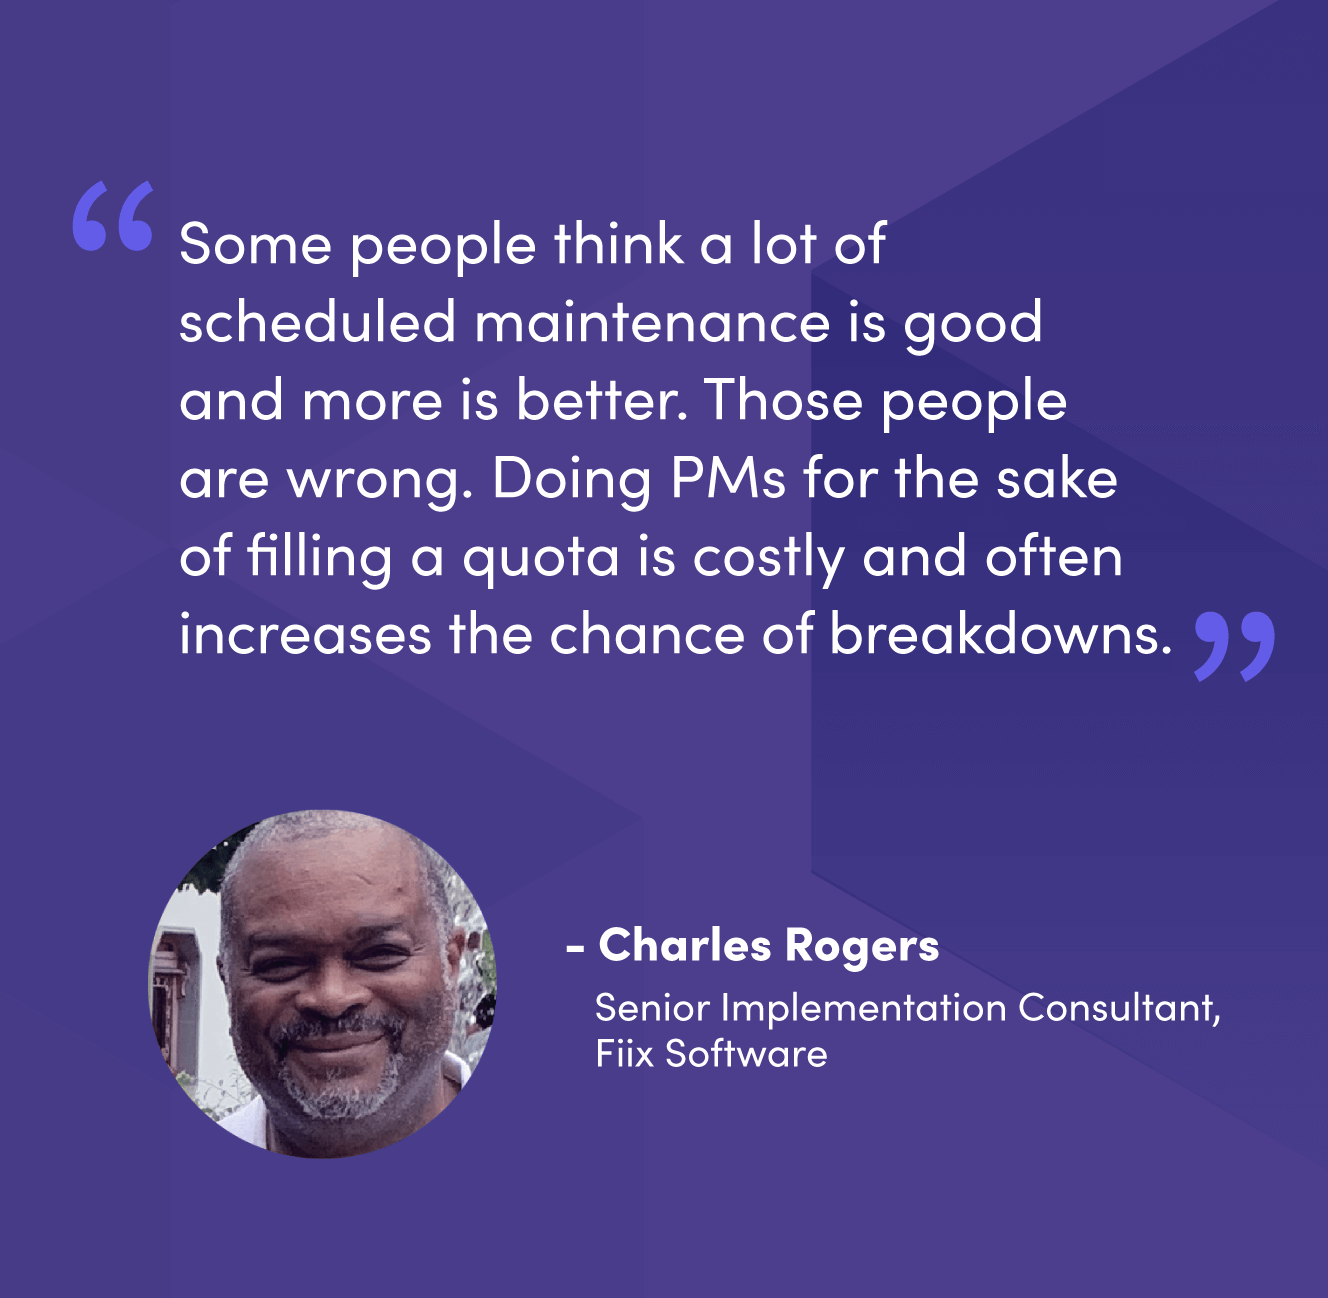 """""""Some people think a lot of scheduled maintenance is good and more is better. Those people are wrong. Doing PMs for the sake of filling a quota is costly and often increases the chance of breakdowns."""" - Charles Rogers, Senior Implementation Consultant, Fiix Software"""